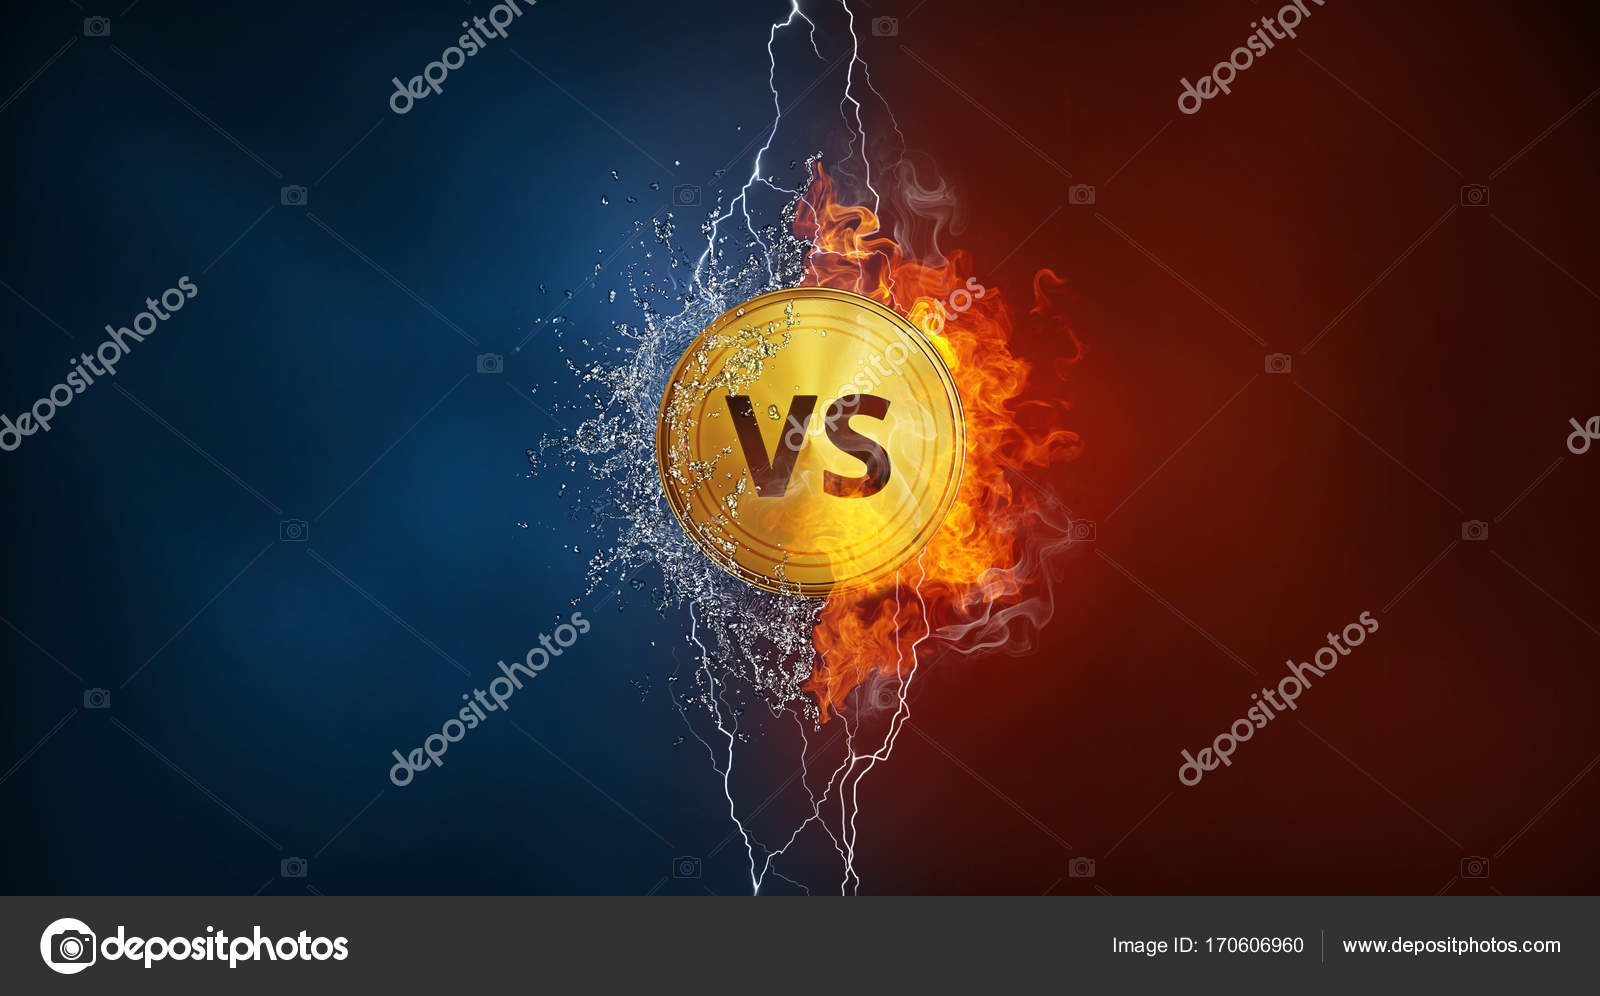 Versus Vs Sign In Fire Water Splashes And Lightning Stock